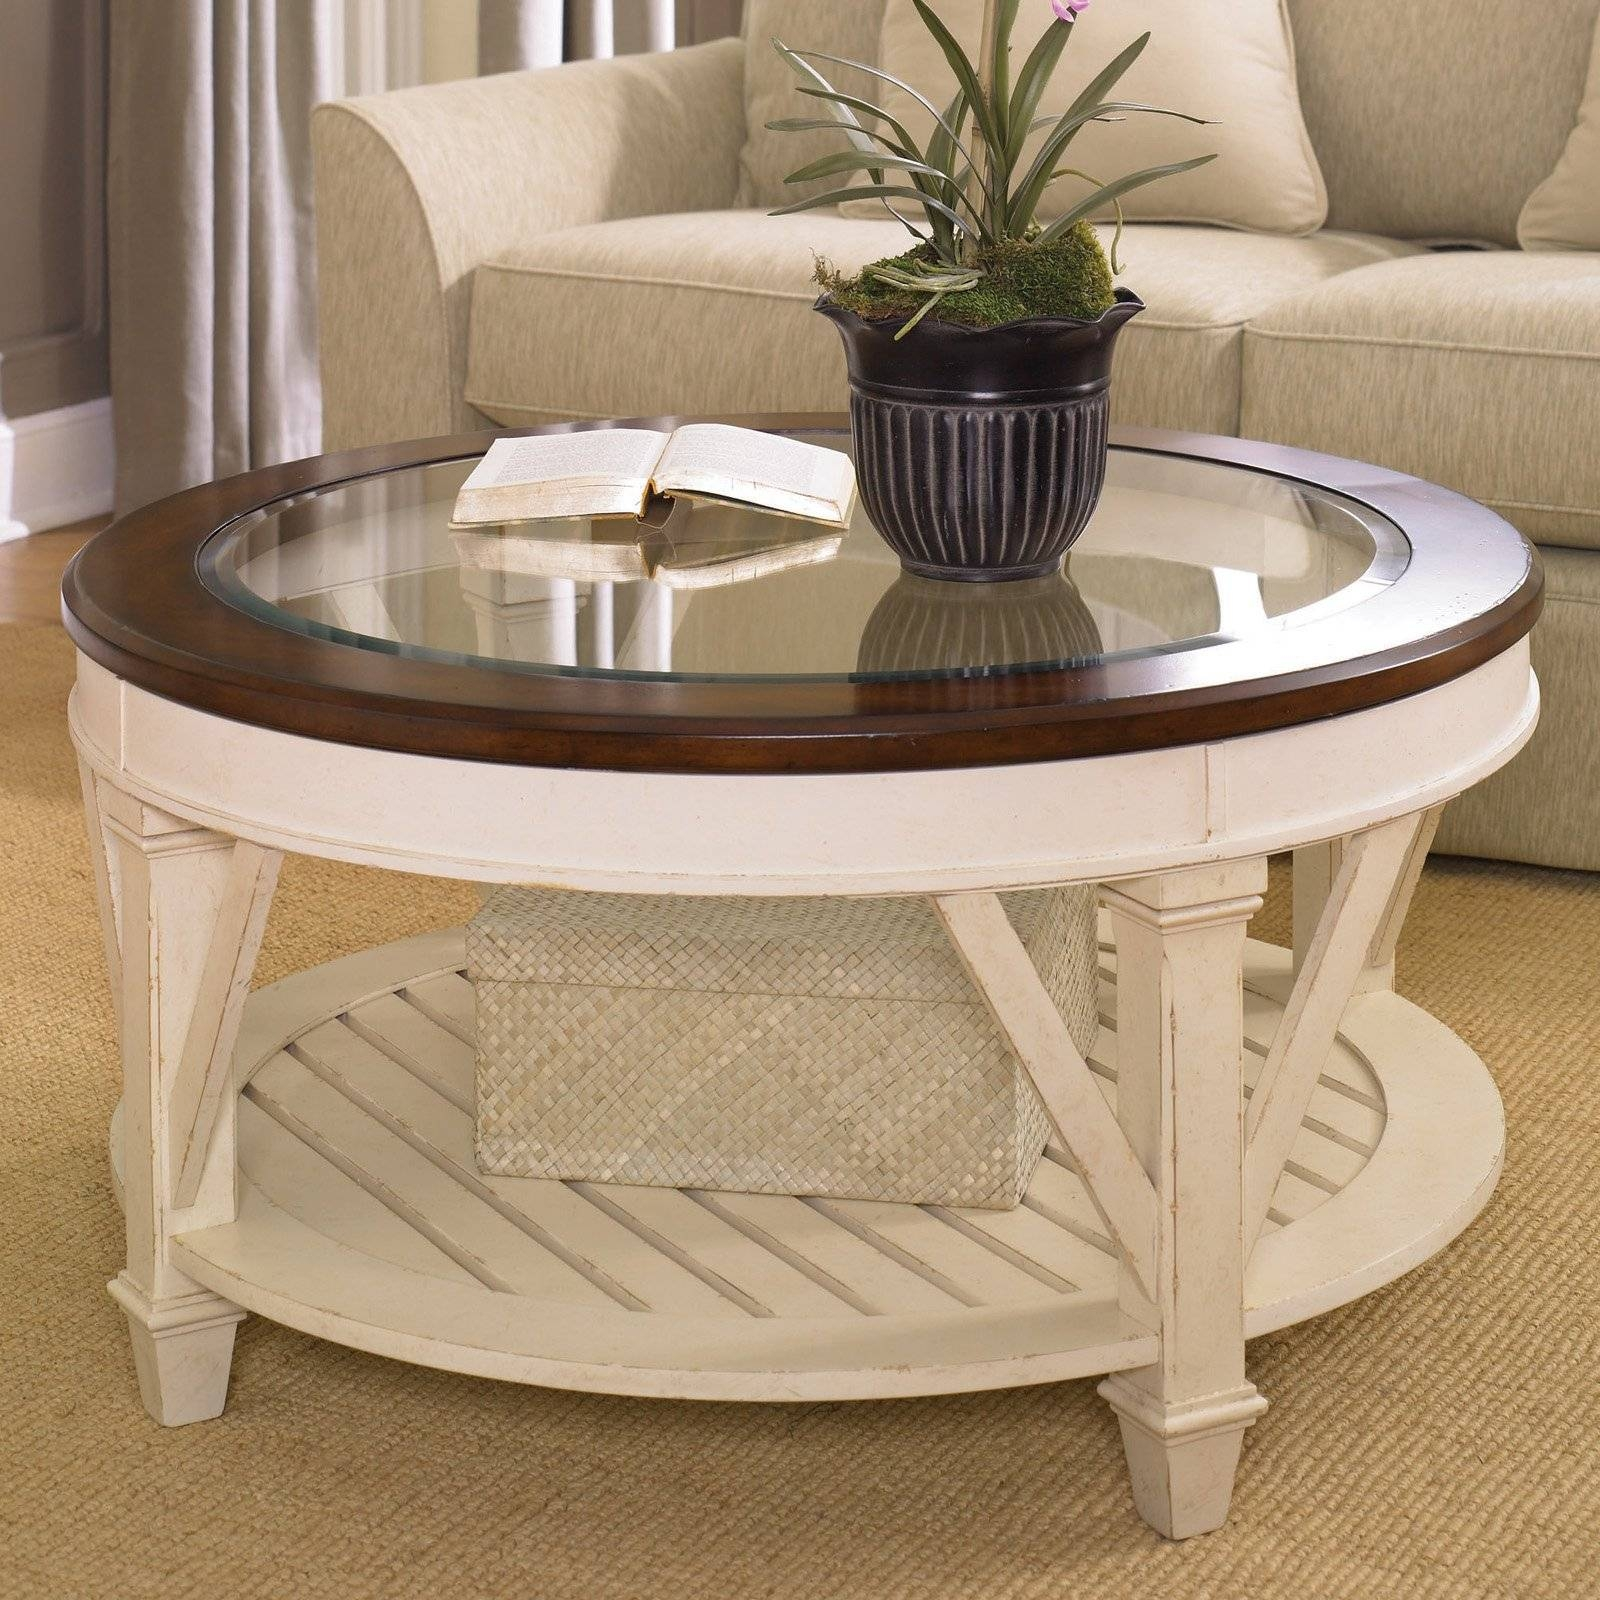 Hammary Promenade Round Coffee Table | Hayneedle pertaining to Solid Glass Coffee Table (Image 8 of 15)